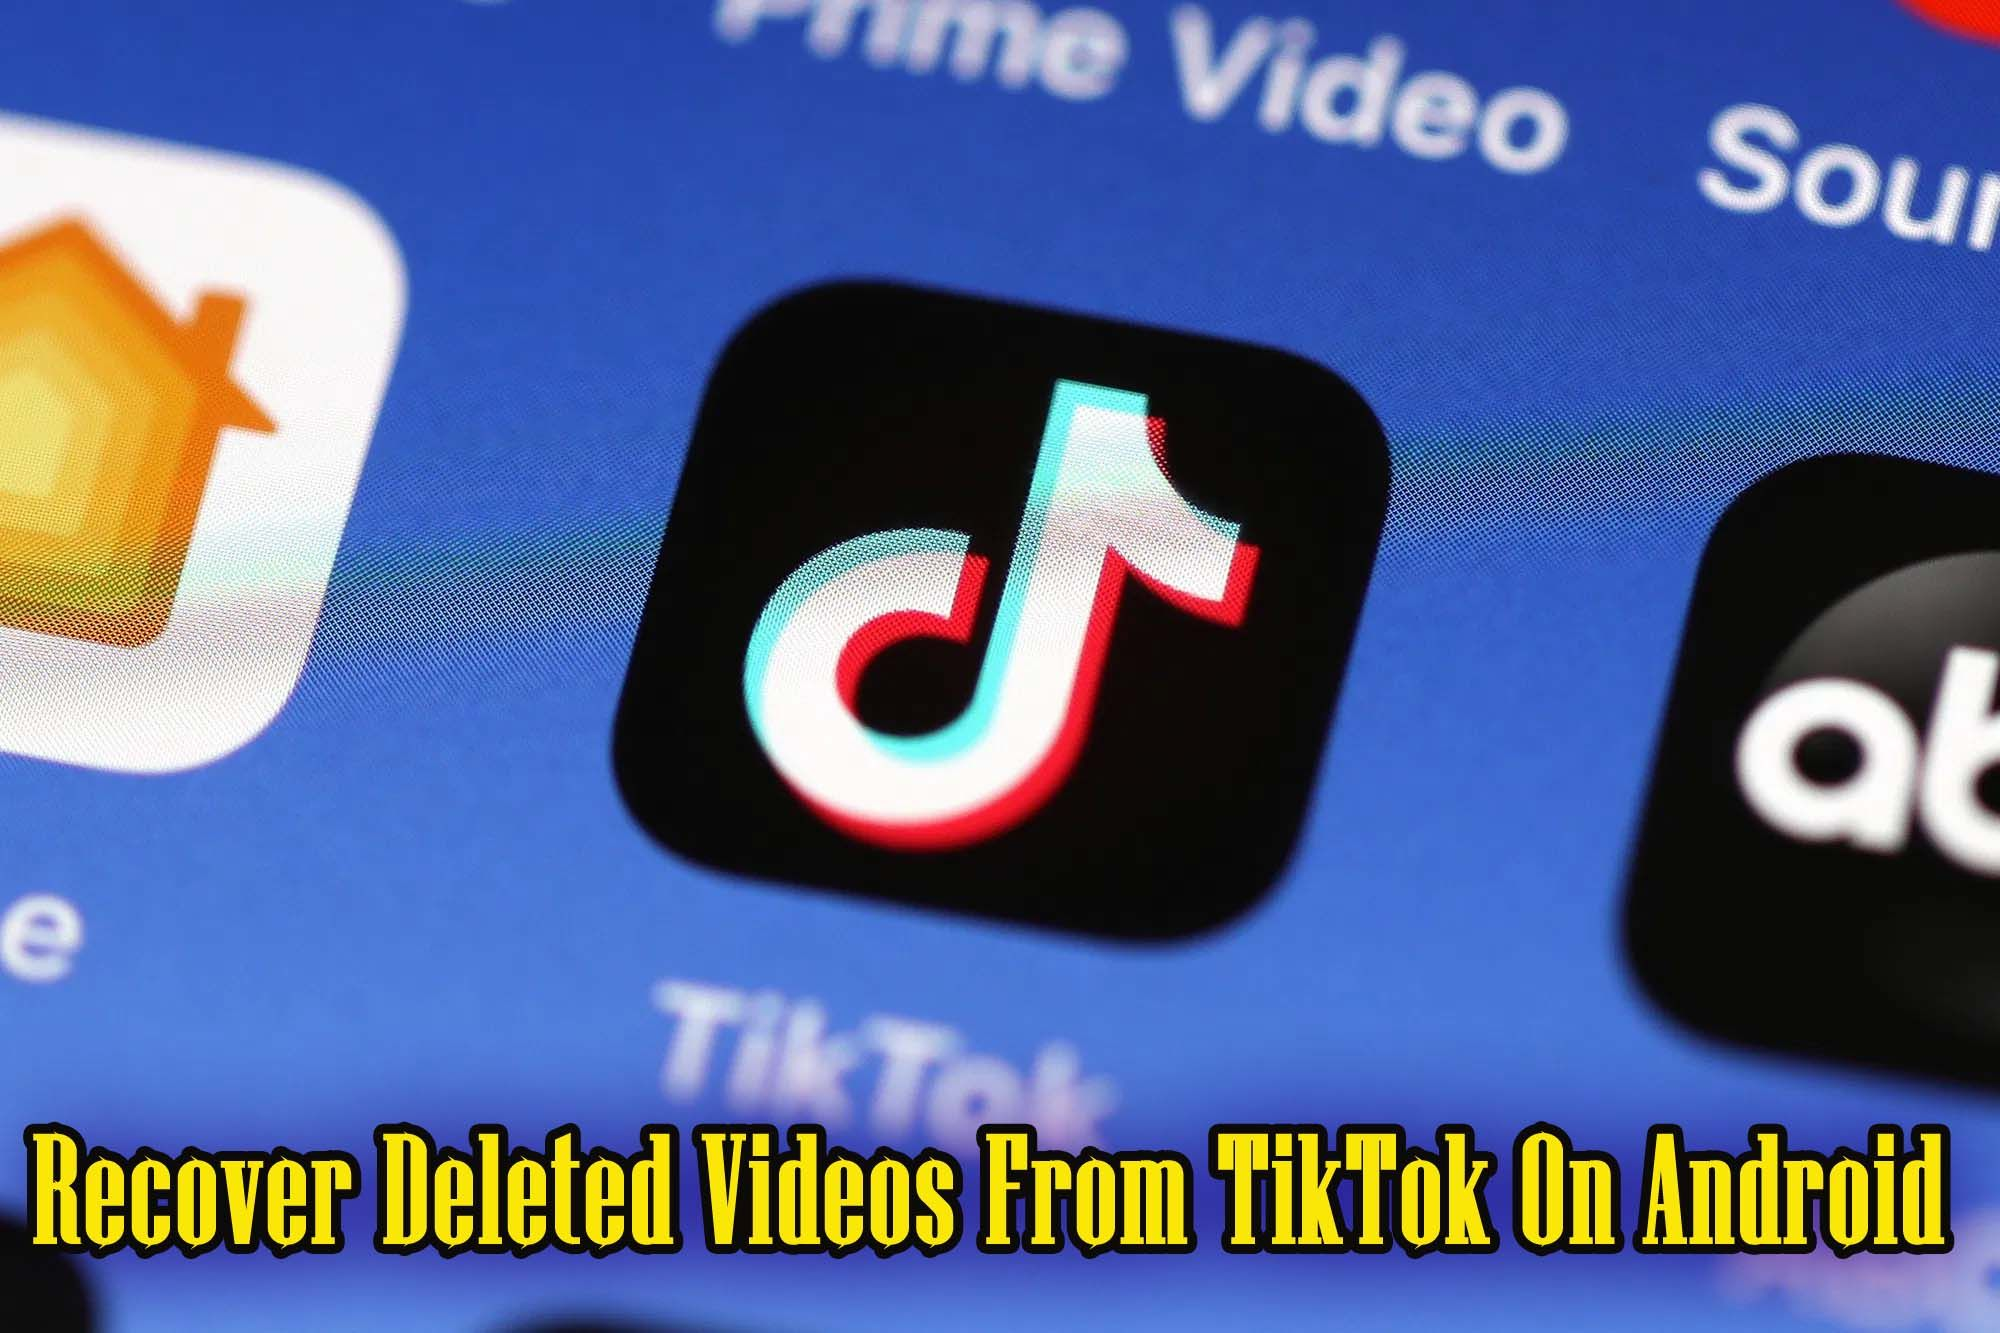 How To Get Back A Picture You Deleted On Android